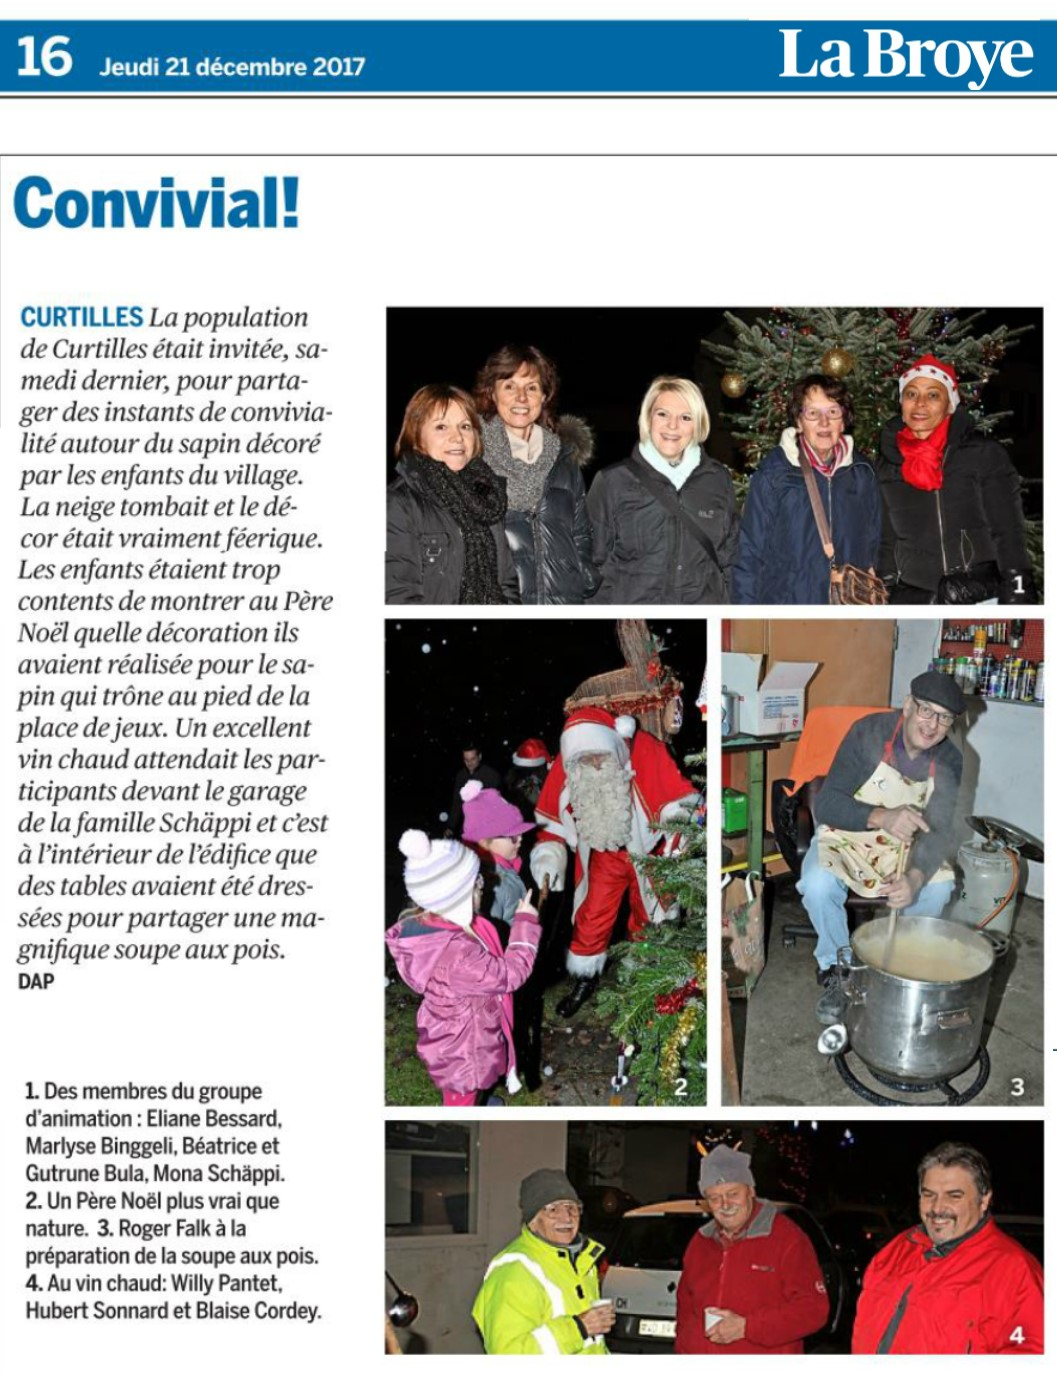 Journal de la Broye 2017 12 21